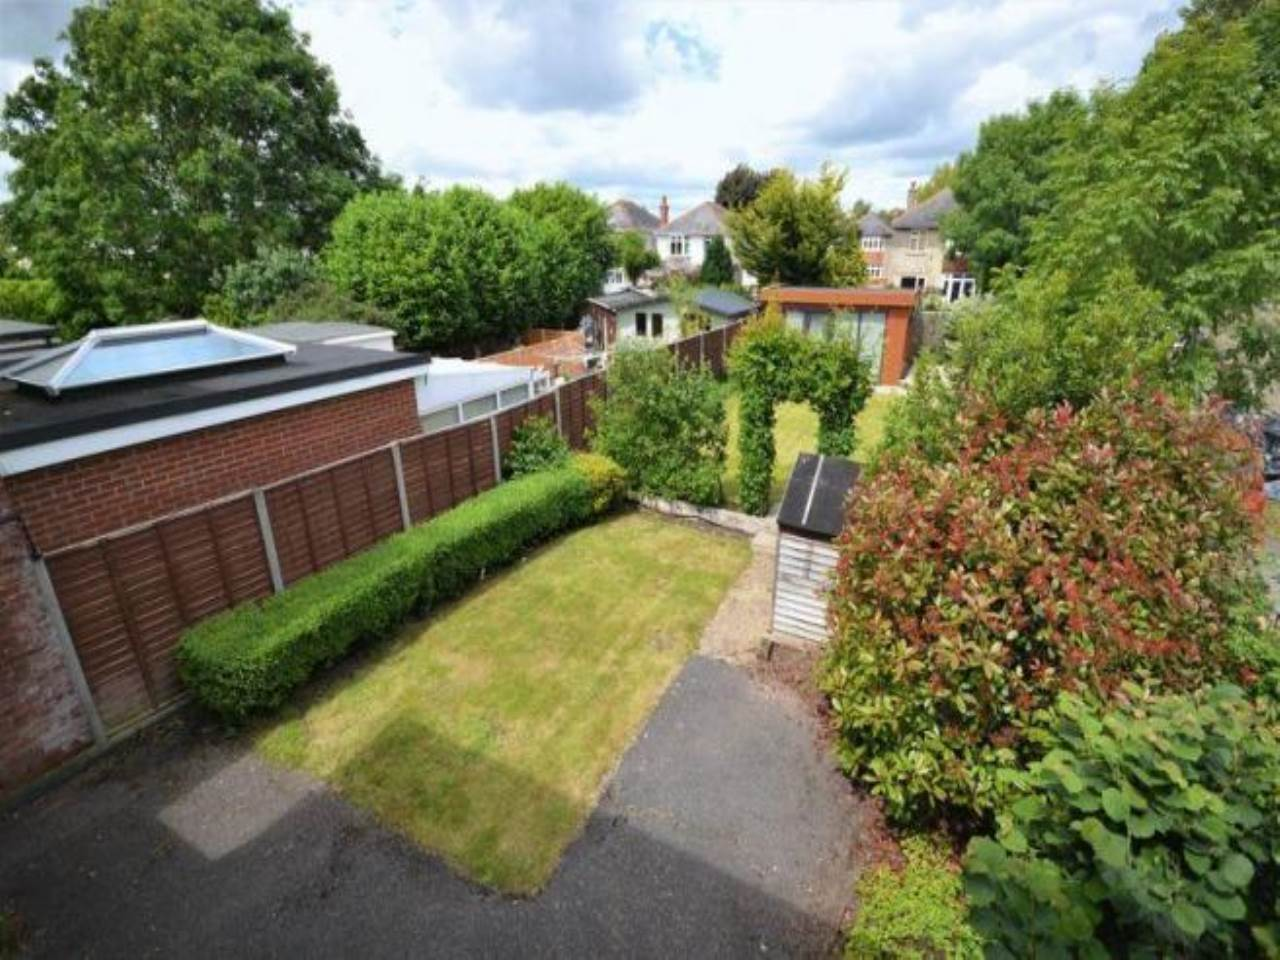 4 bed house for sale in Cowper Road, Moordown 2